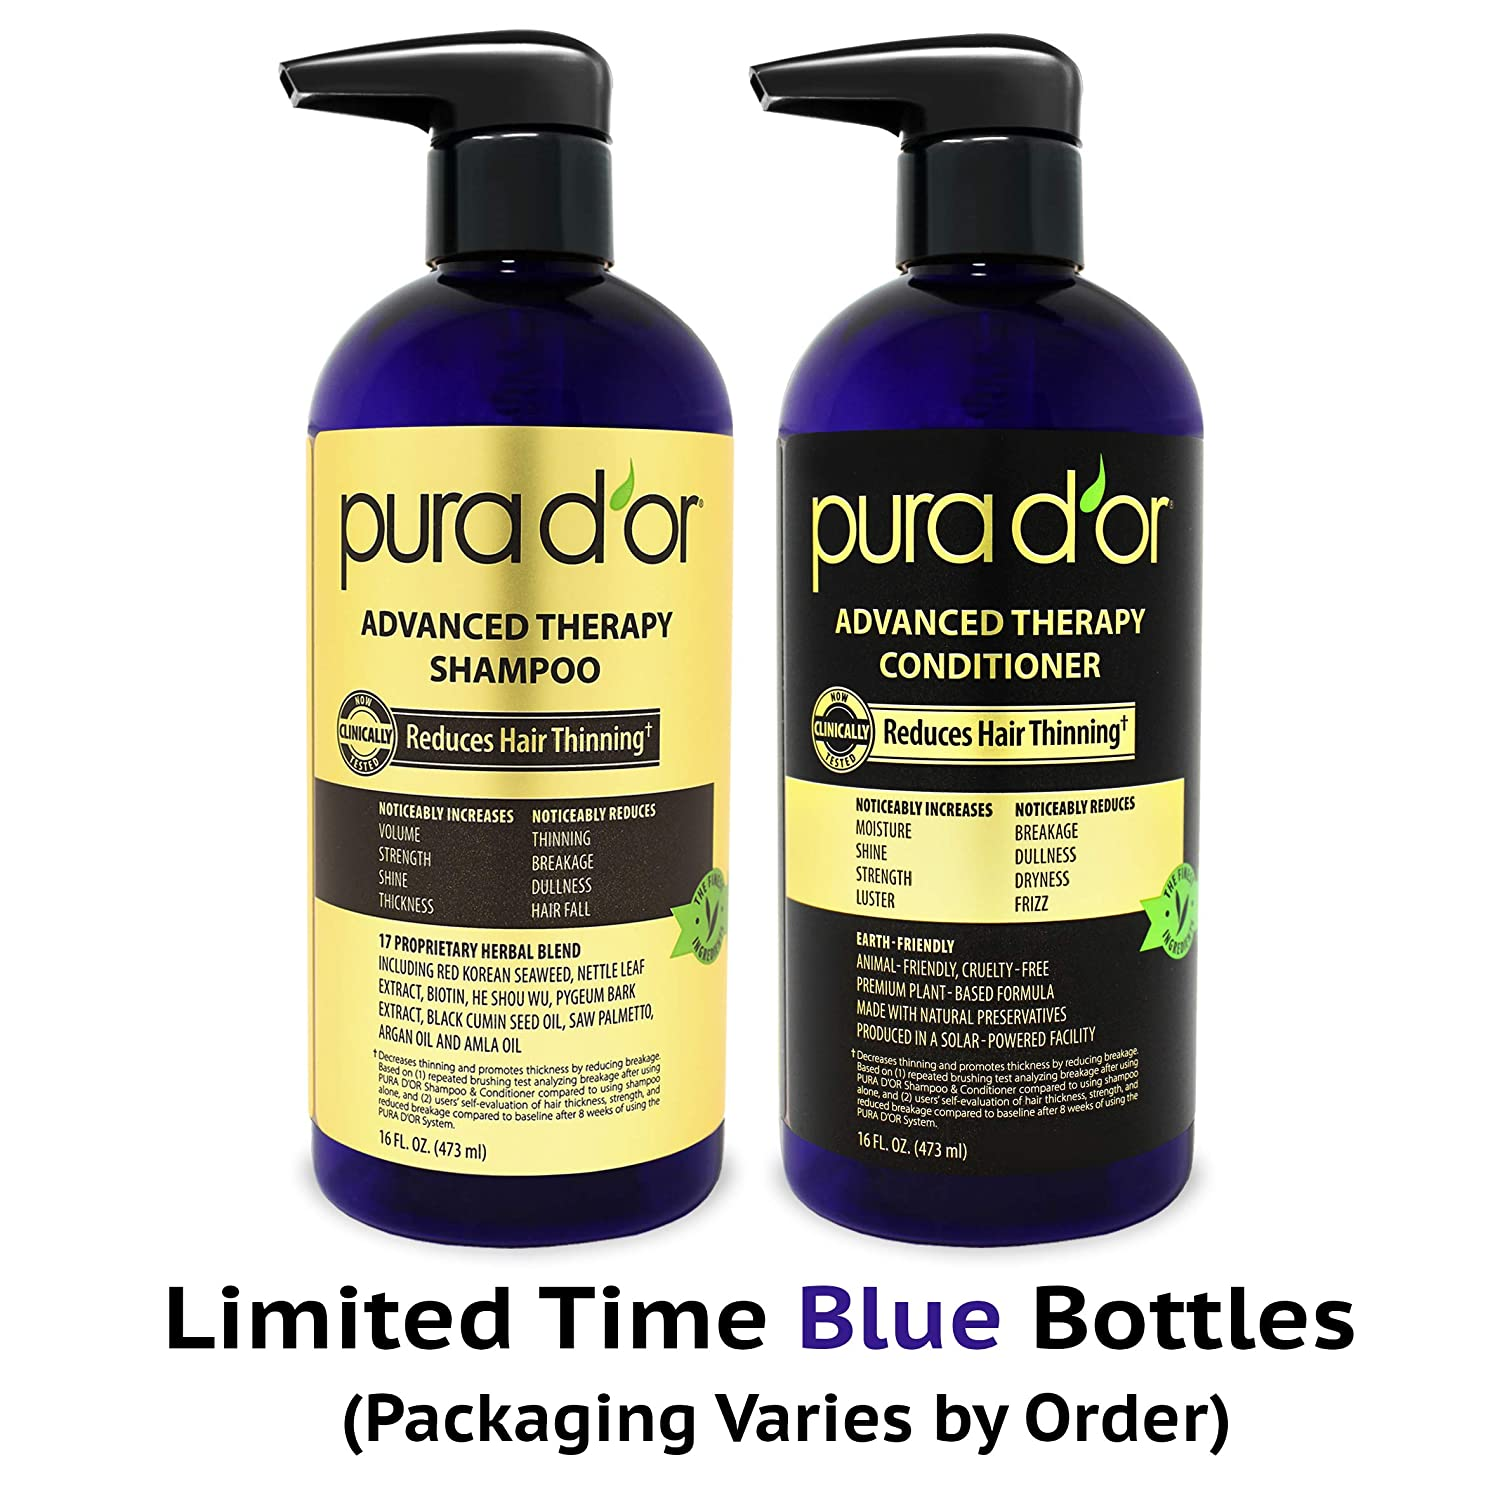 Pura D'or Advanced Therapy Shampoo Review